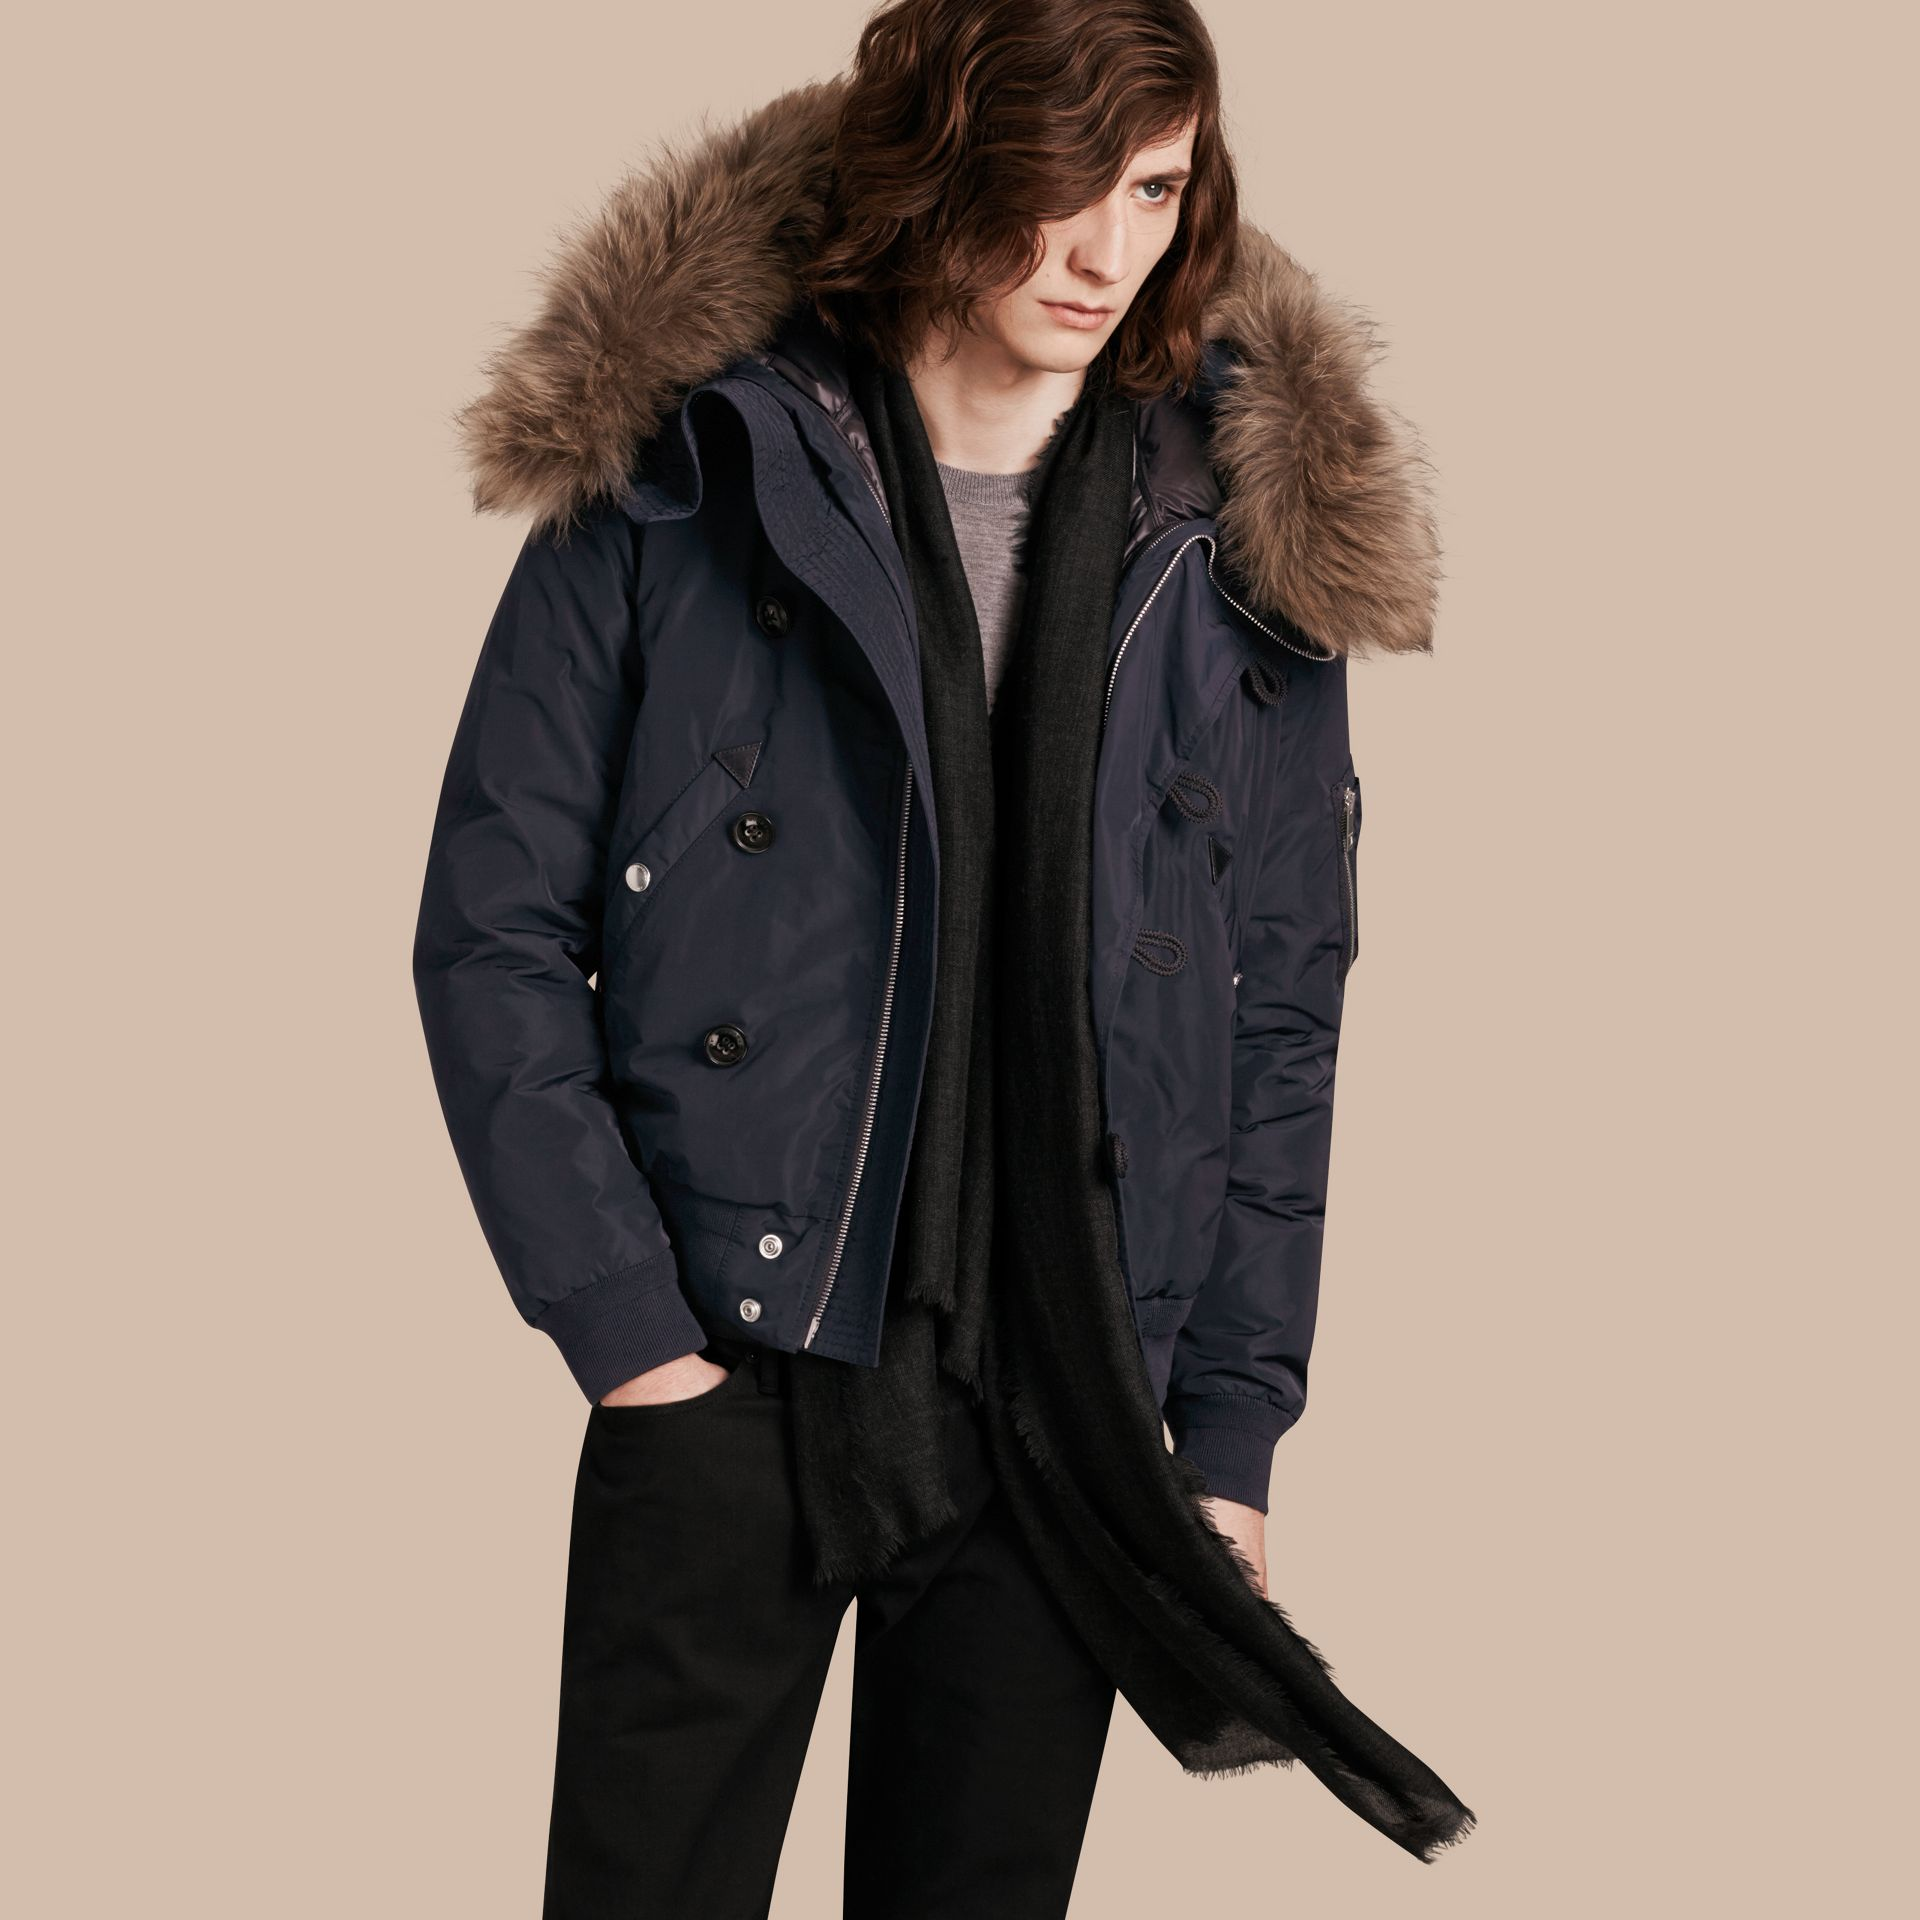 Ink Two-in-One Jacket with Raccoon-trimmed Hood - gallery image 1